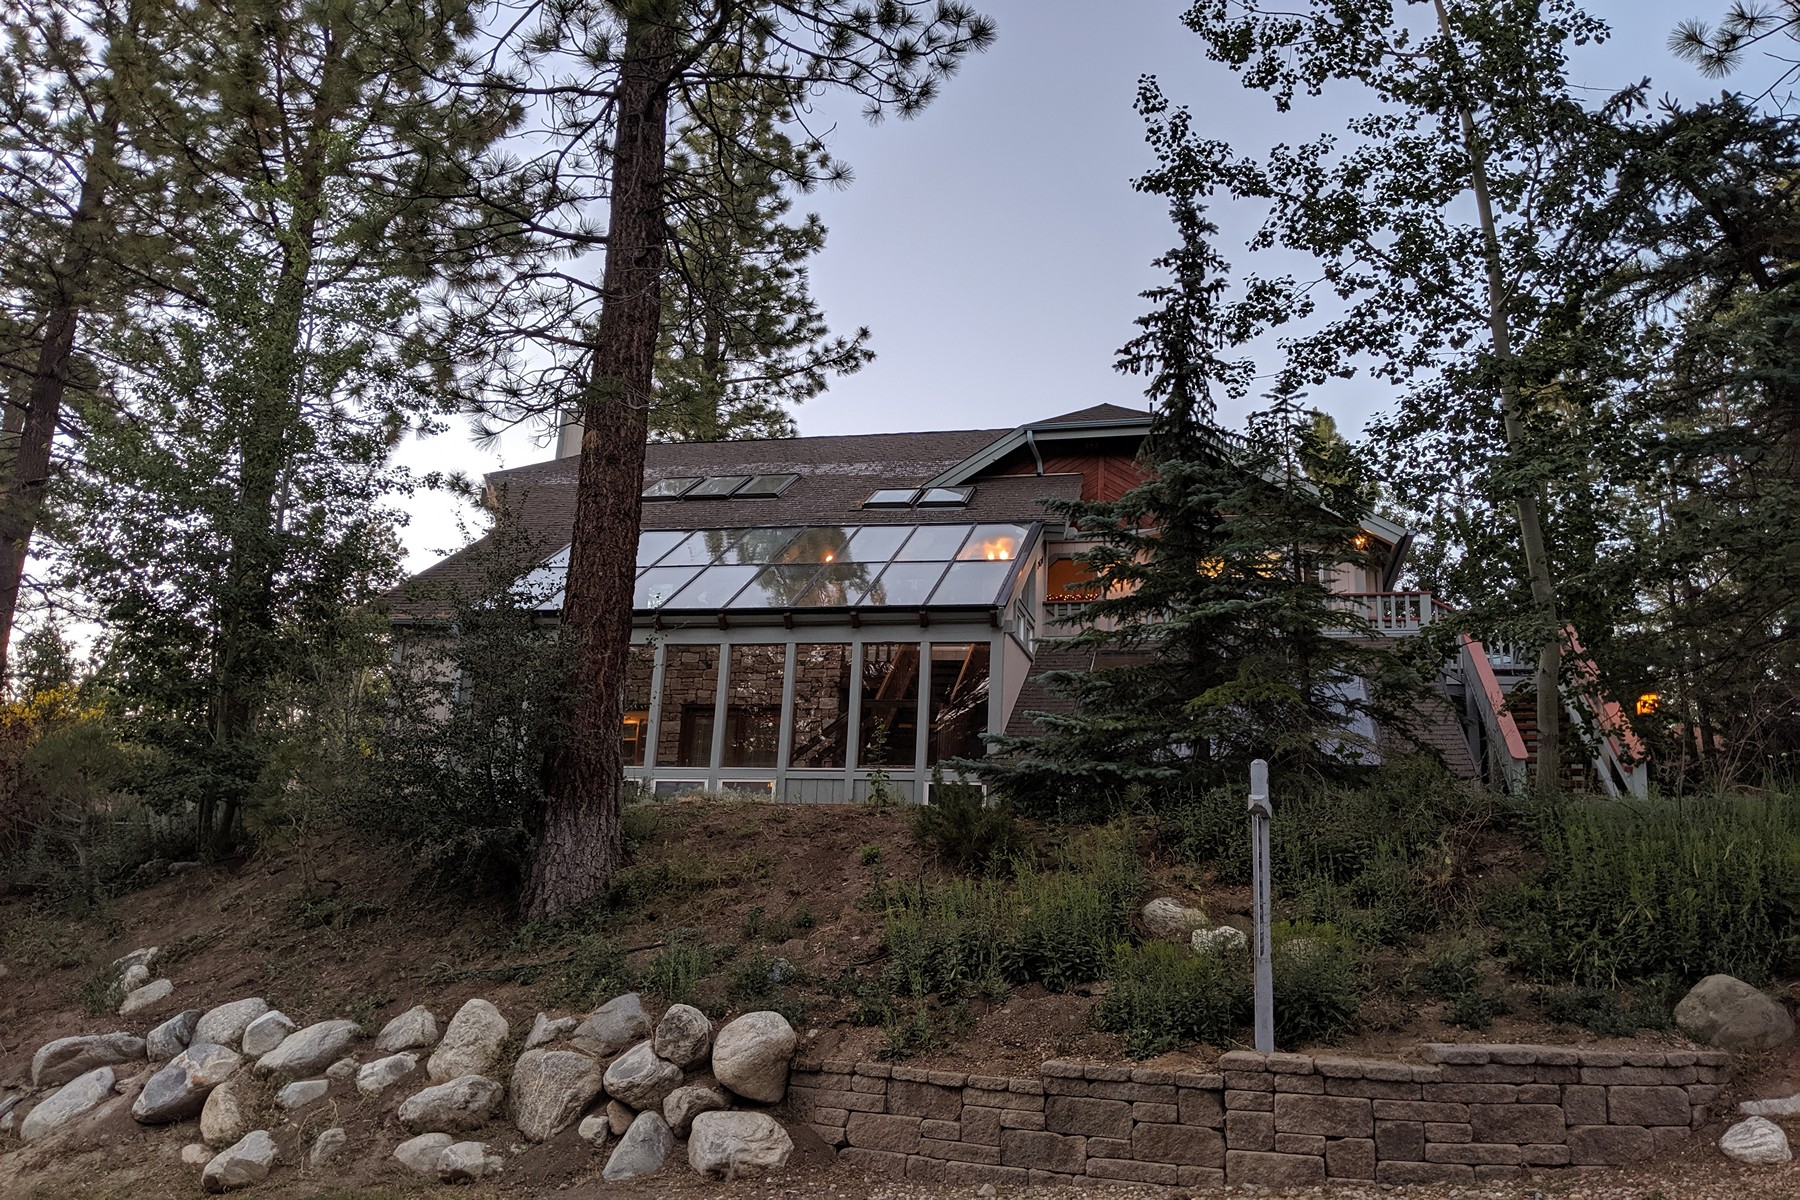 Single Family Homes for Sale at 42678 Constellation Drive Big Bear Lake, CA 92315 42678 Constellation Drive Big Bear Lake, California 92315 United States